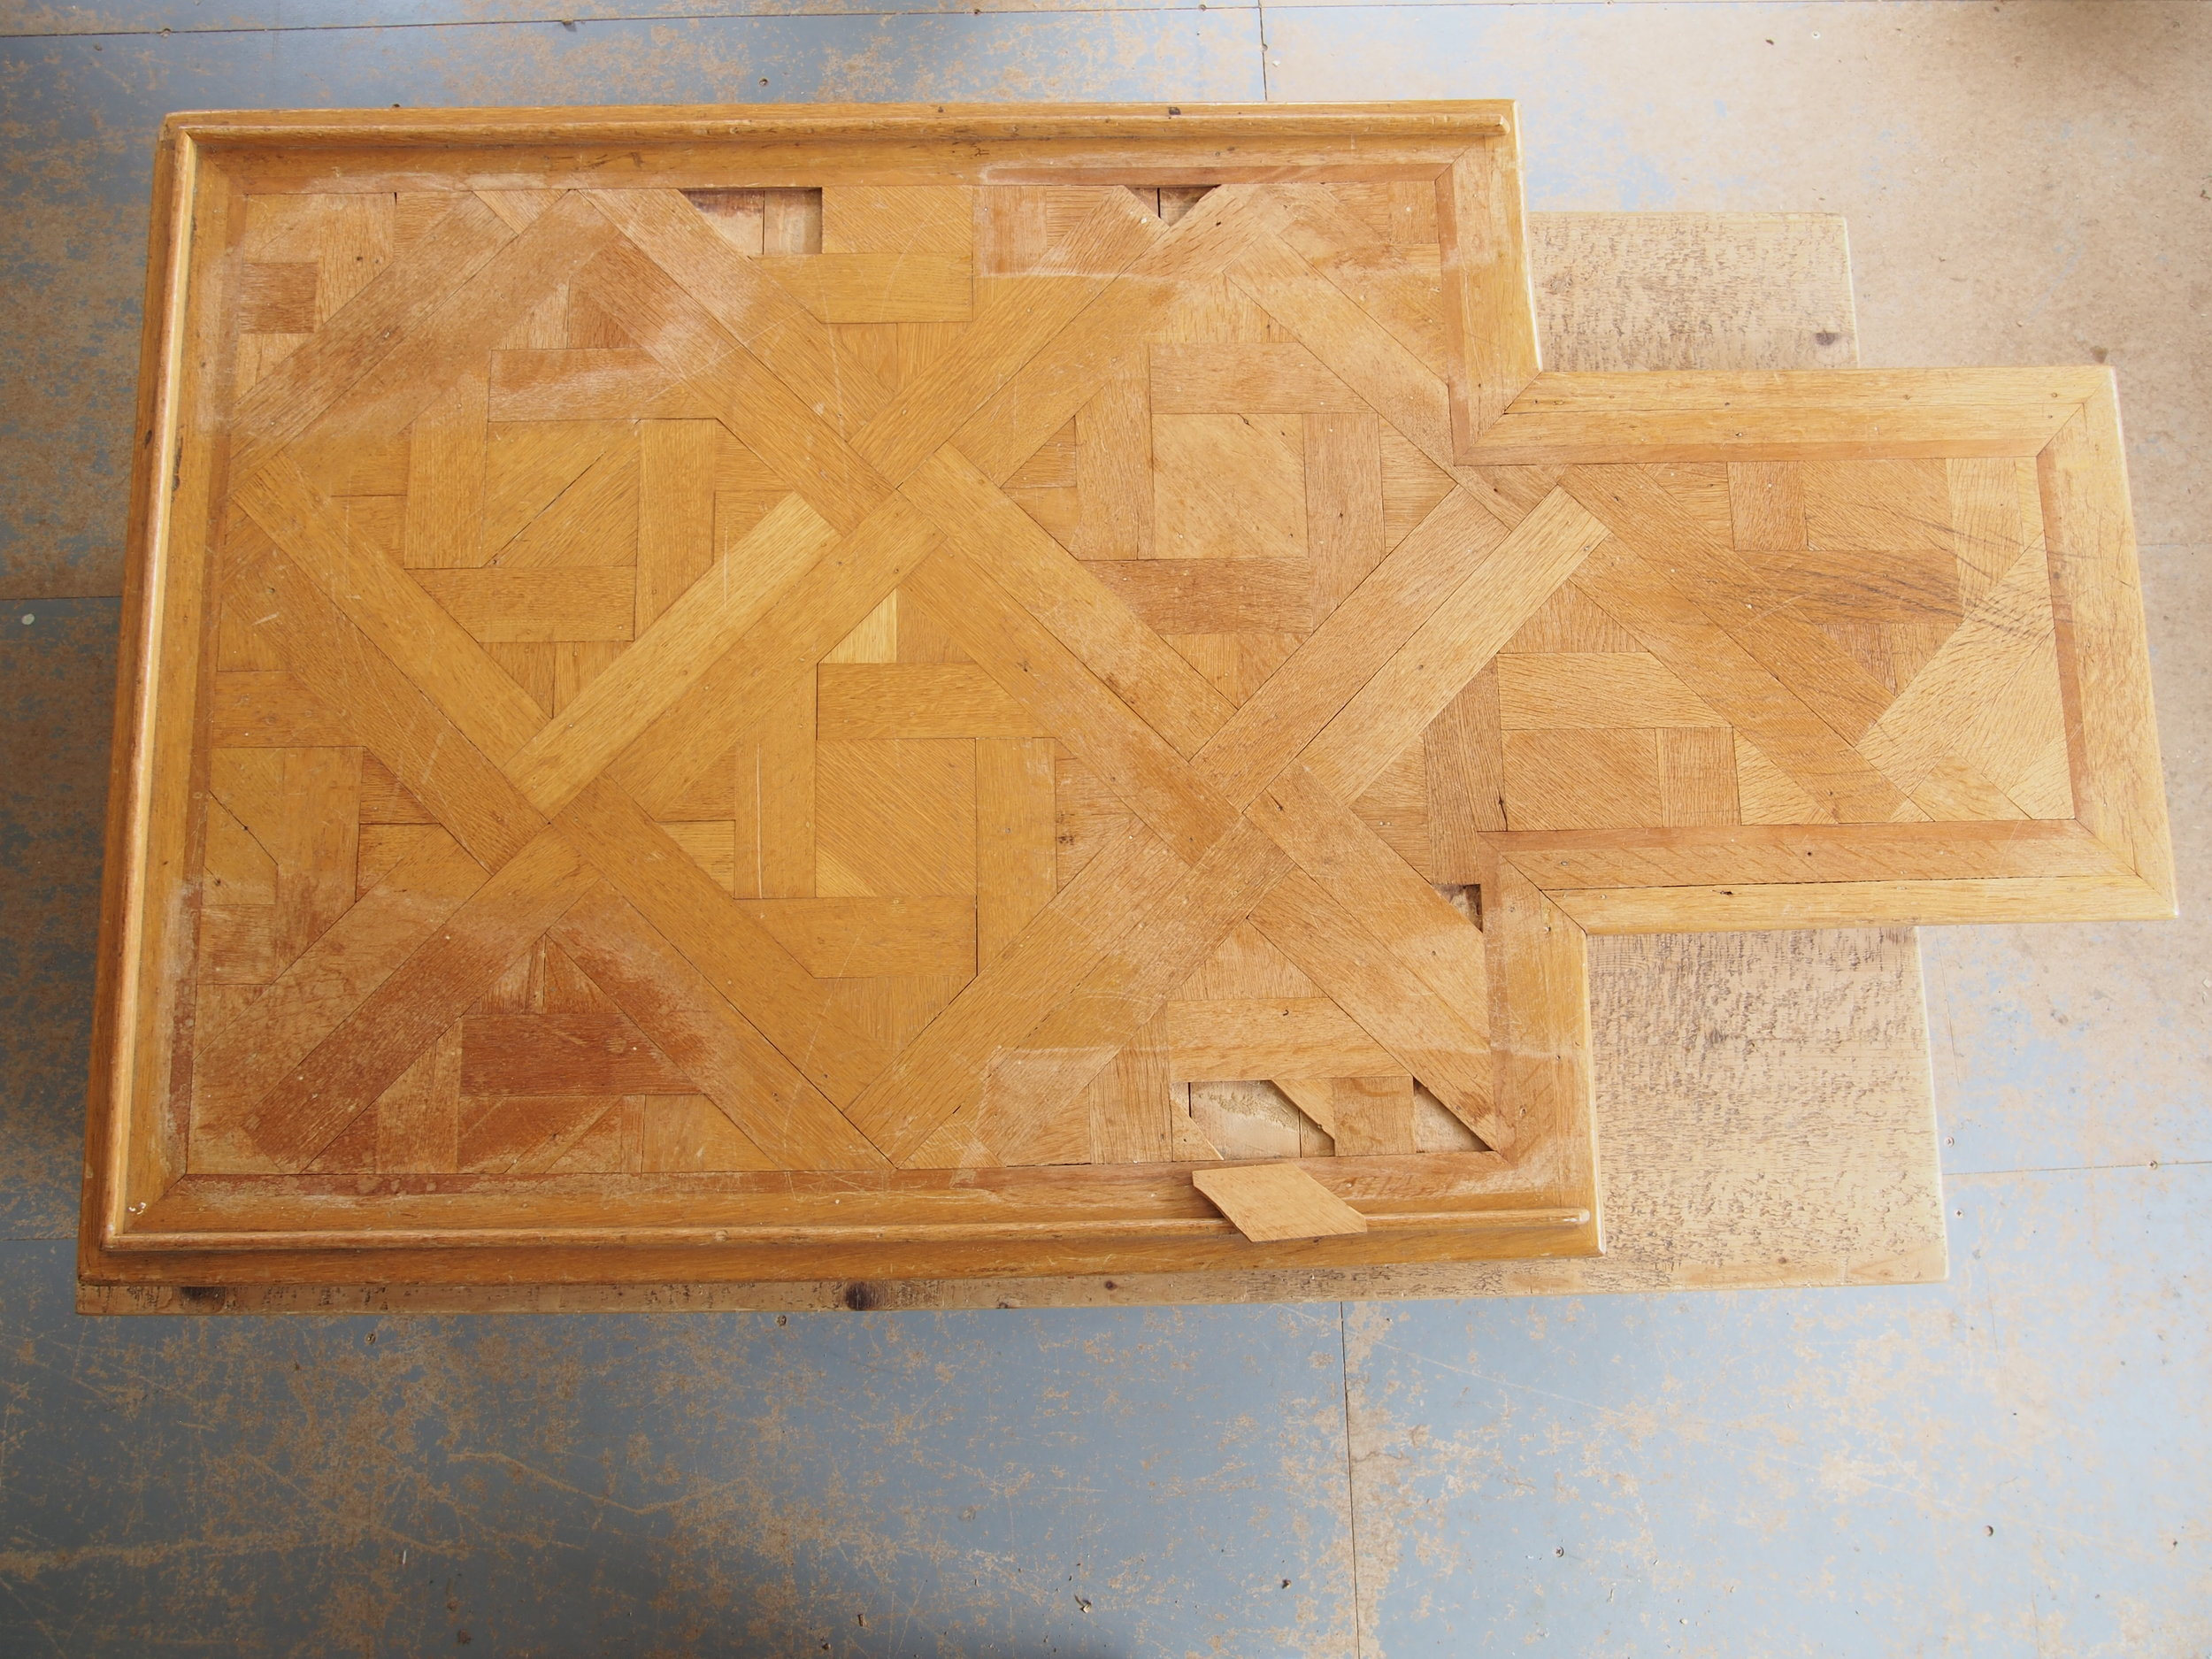 Before Restoration of Parquet patterned Oak Conference Table Plinth   The original condition had missing and broken sections and the surface finish was scratched and patchy.